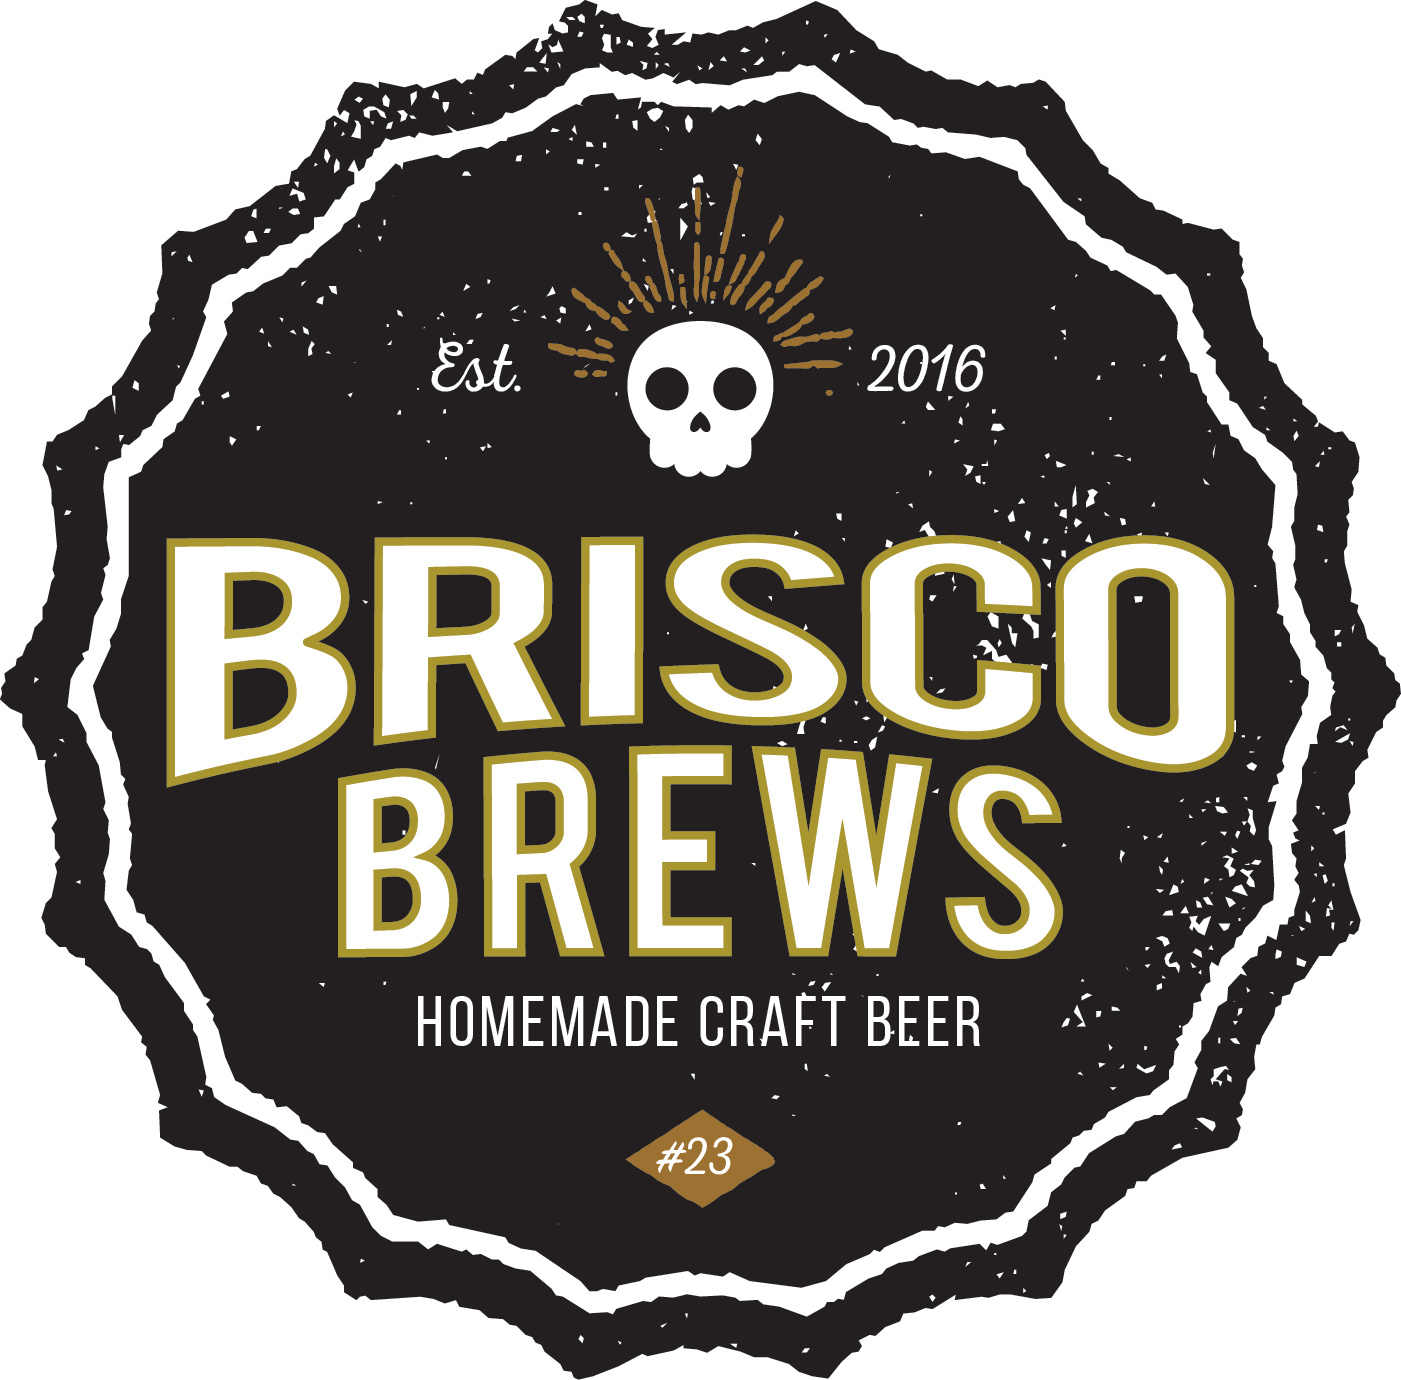 BRISCO BREWS